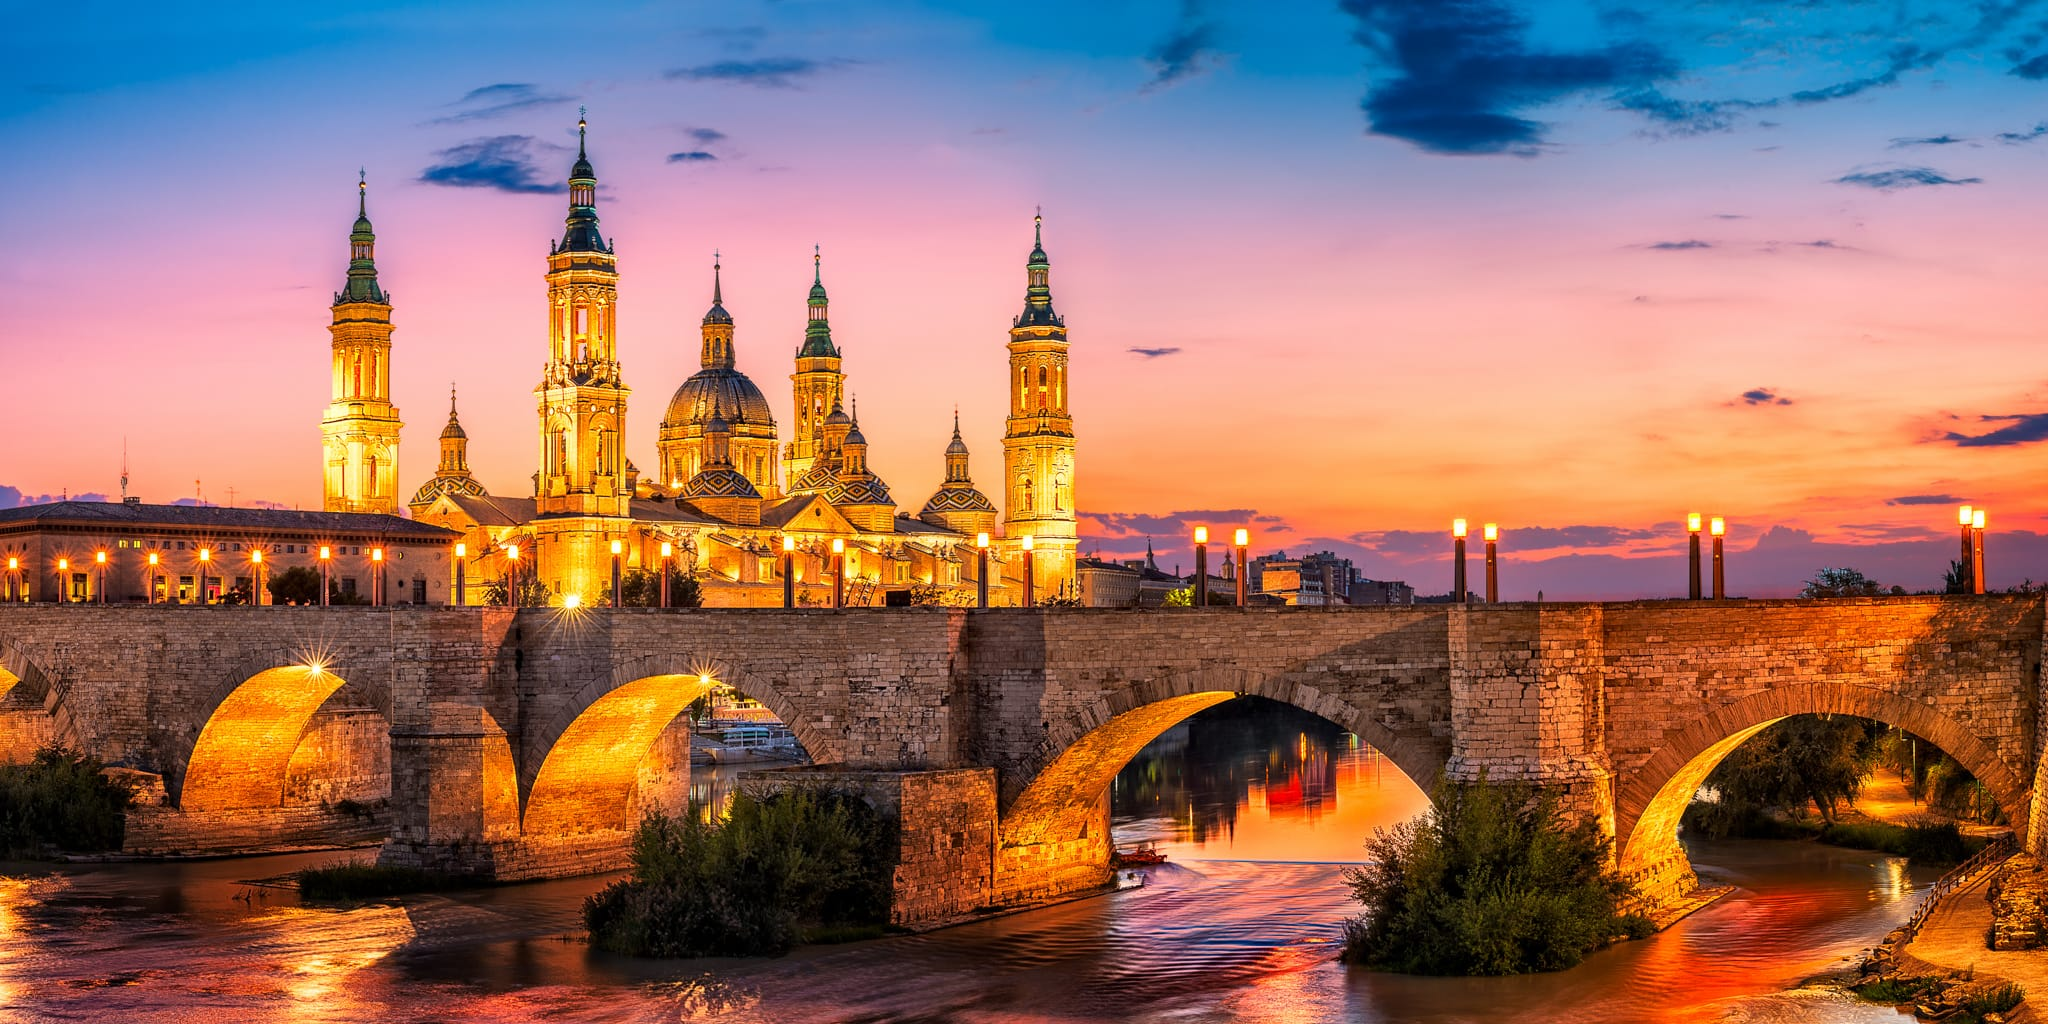 The El Pilar Basilica in Zaragoza, Spain